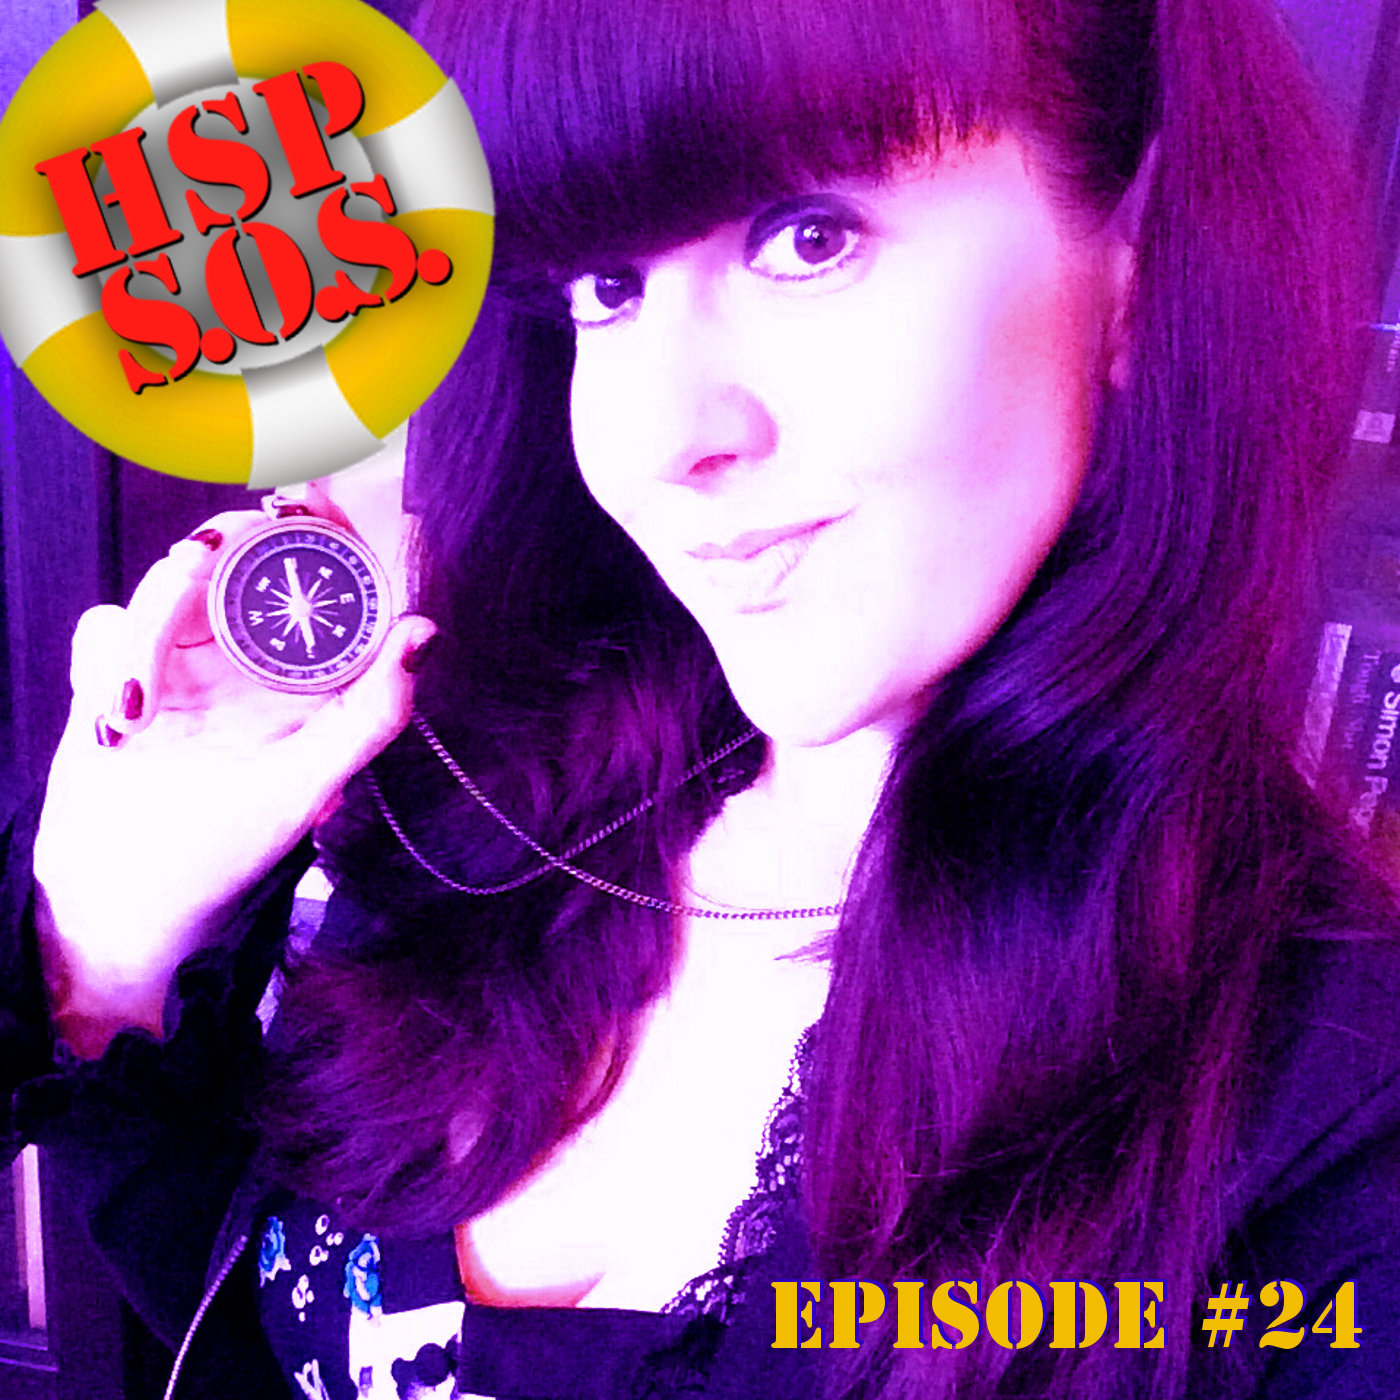 HSP SOS #24 - Highly Sensitive Body Image